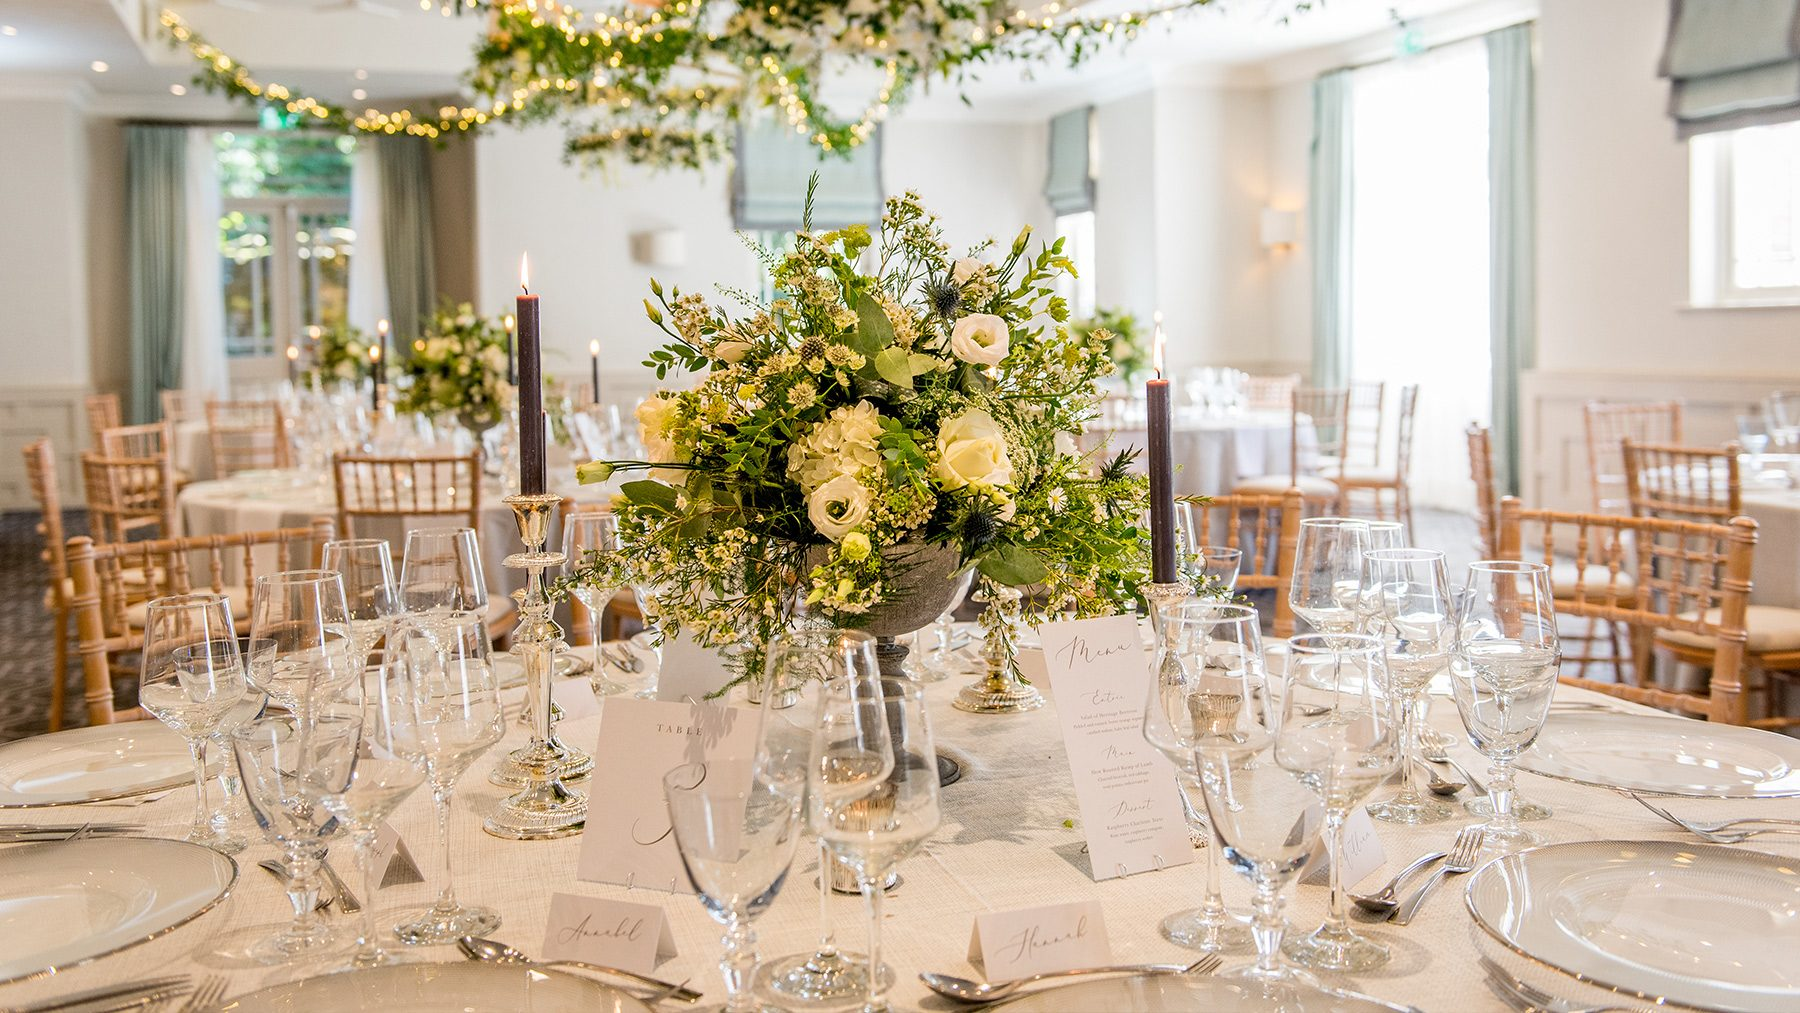 The Evelyn Suite set for a wedding breakfast